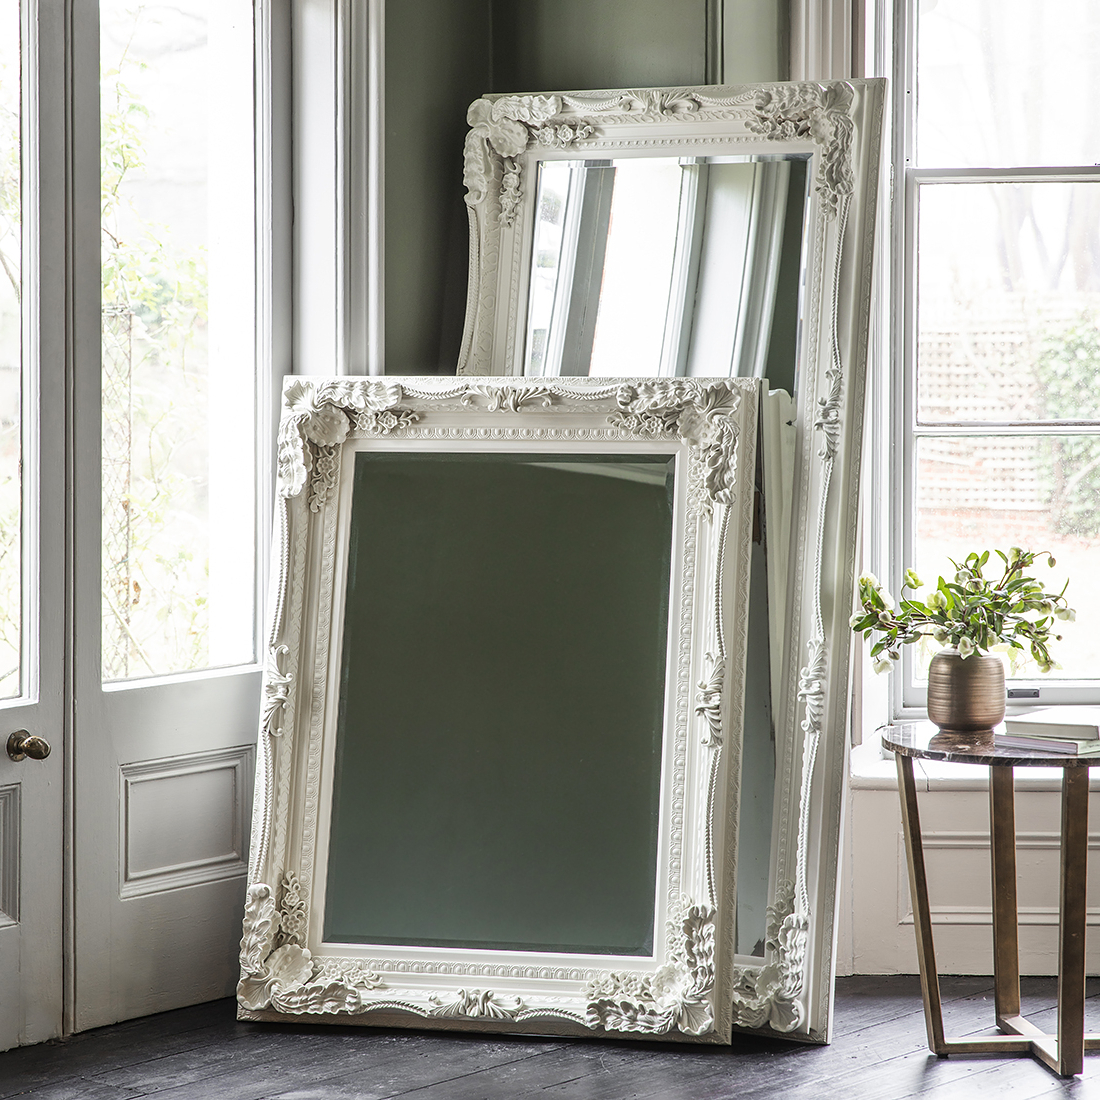 Recent Decorative Full Length Wall Mirrors With Regard To Decorative Cream Full Length Mirror (View 14 of 20)